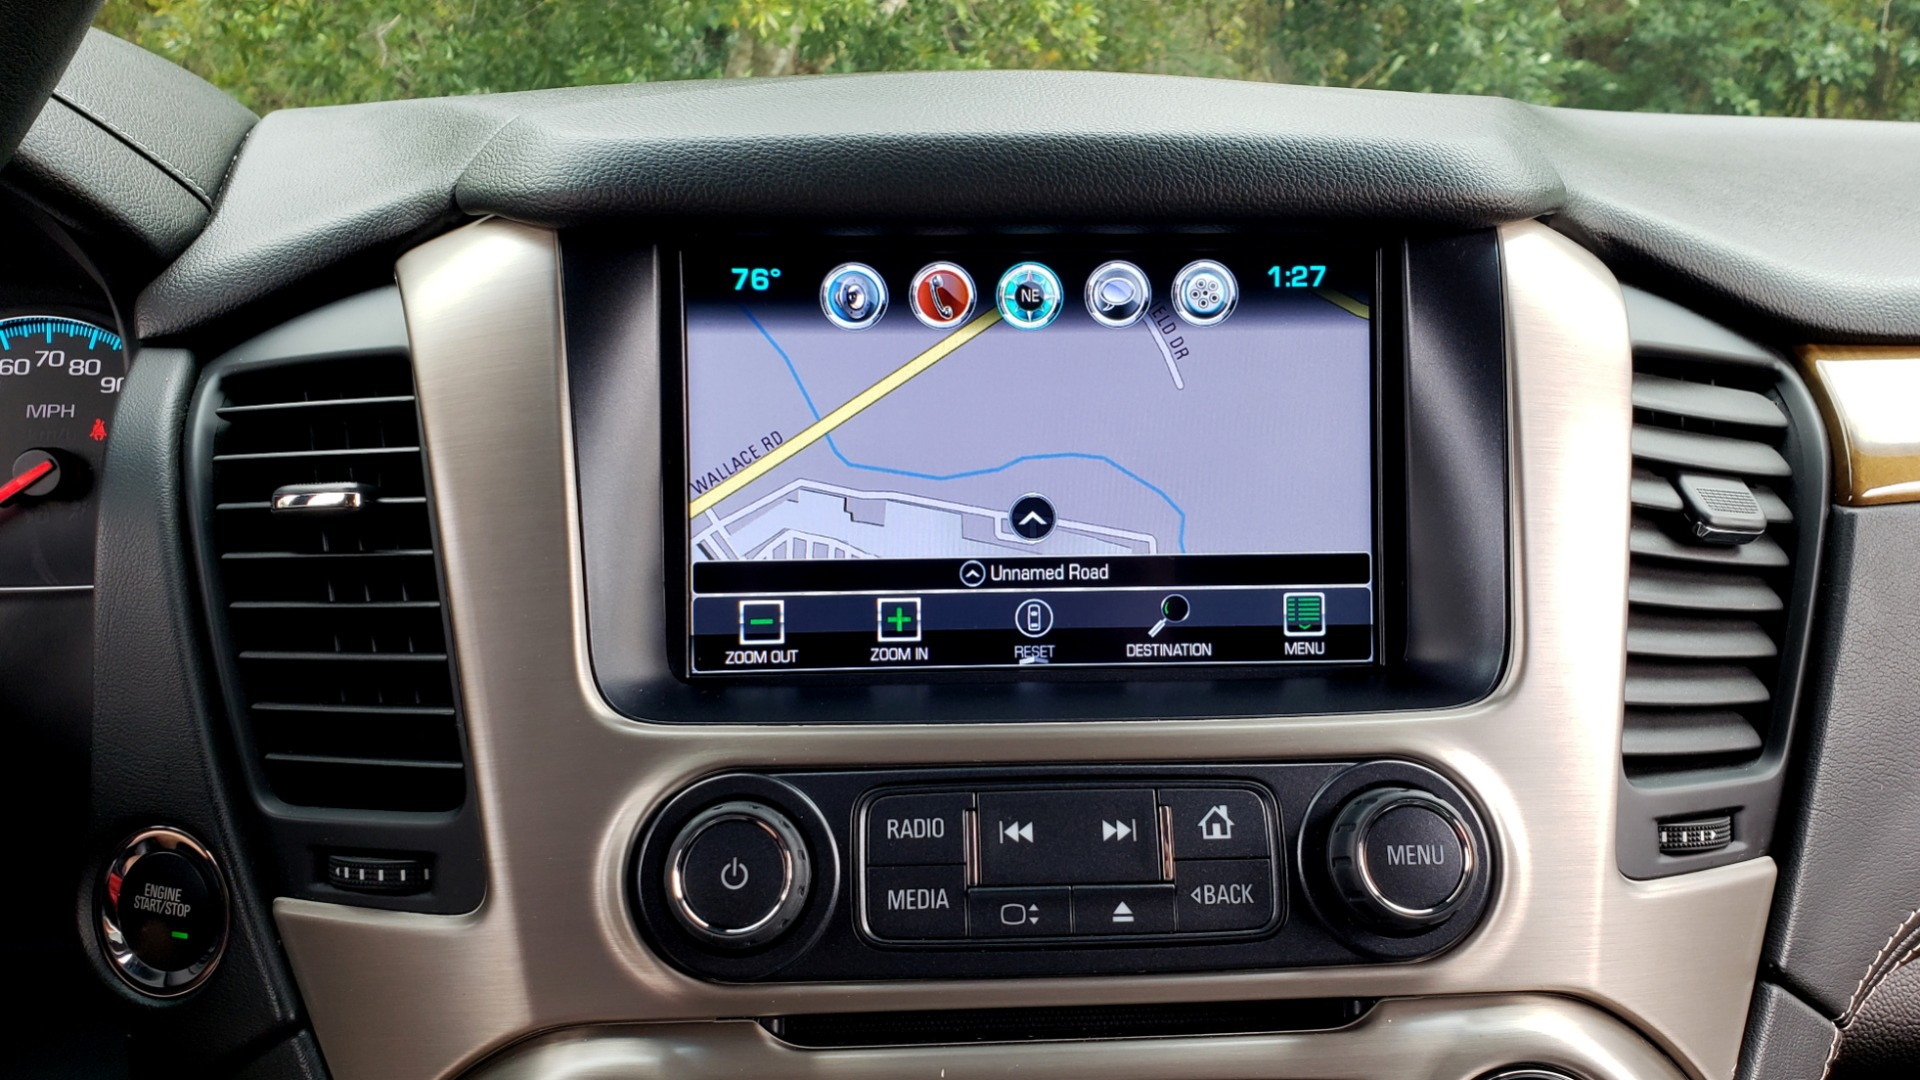 Used 2017 GMC YUKON XL DENALI 4WD / NAV / SUNROOF / ENT / 3-ROWS / BOSE / REARVIEW for sale $48,695 at Formula Imports in Charlotte NC 28227 53